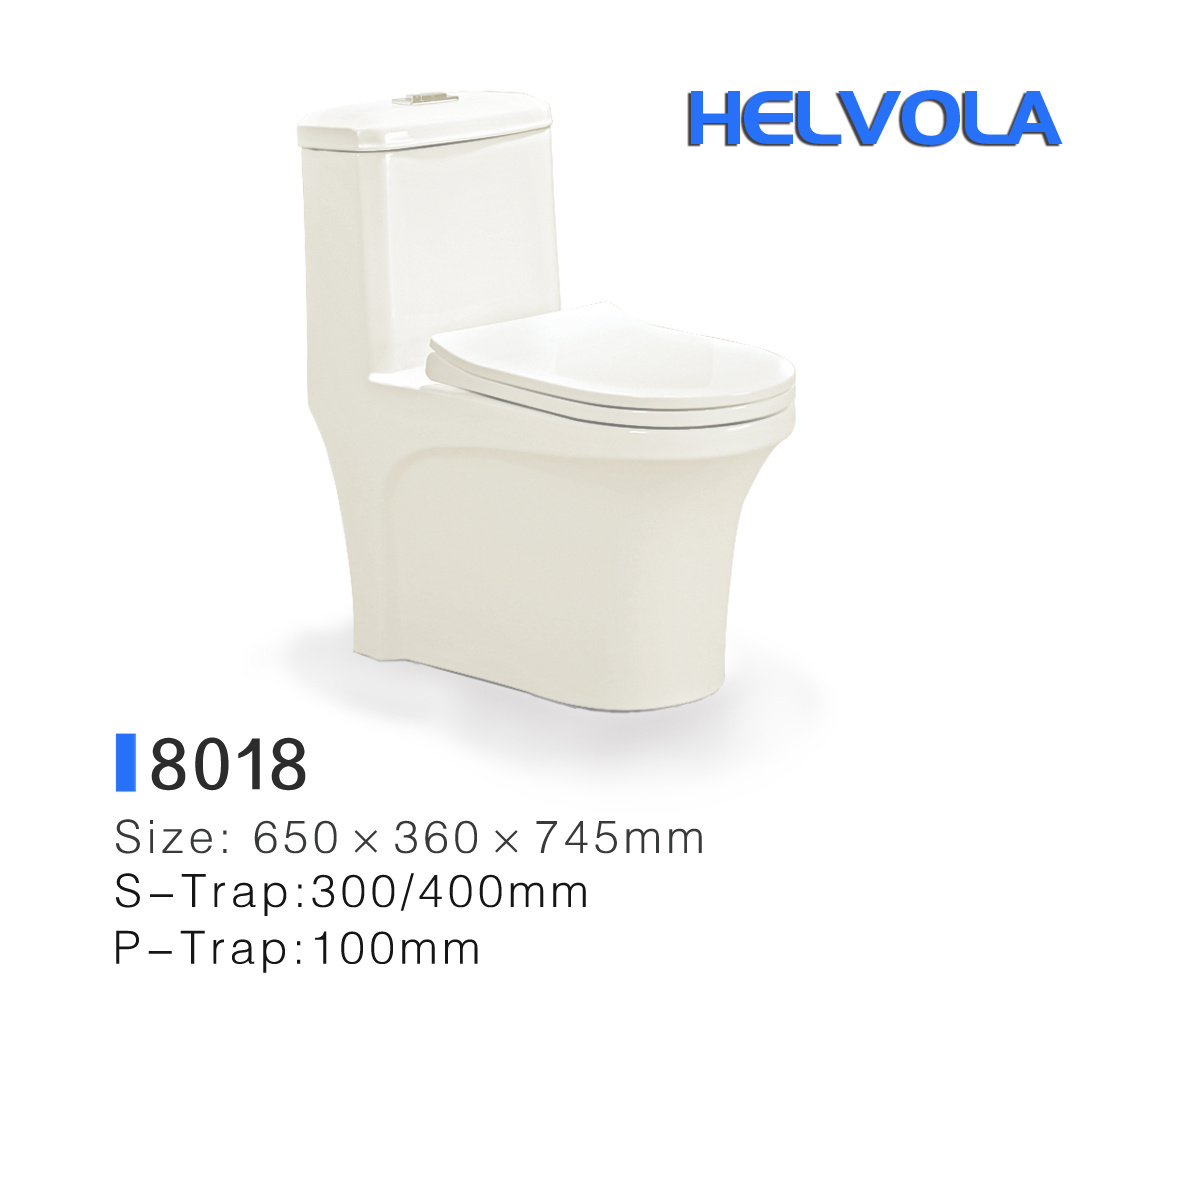 China Ceramic Toilet, Ceramic Toilet Manufacturers, Suppliers | Made ...